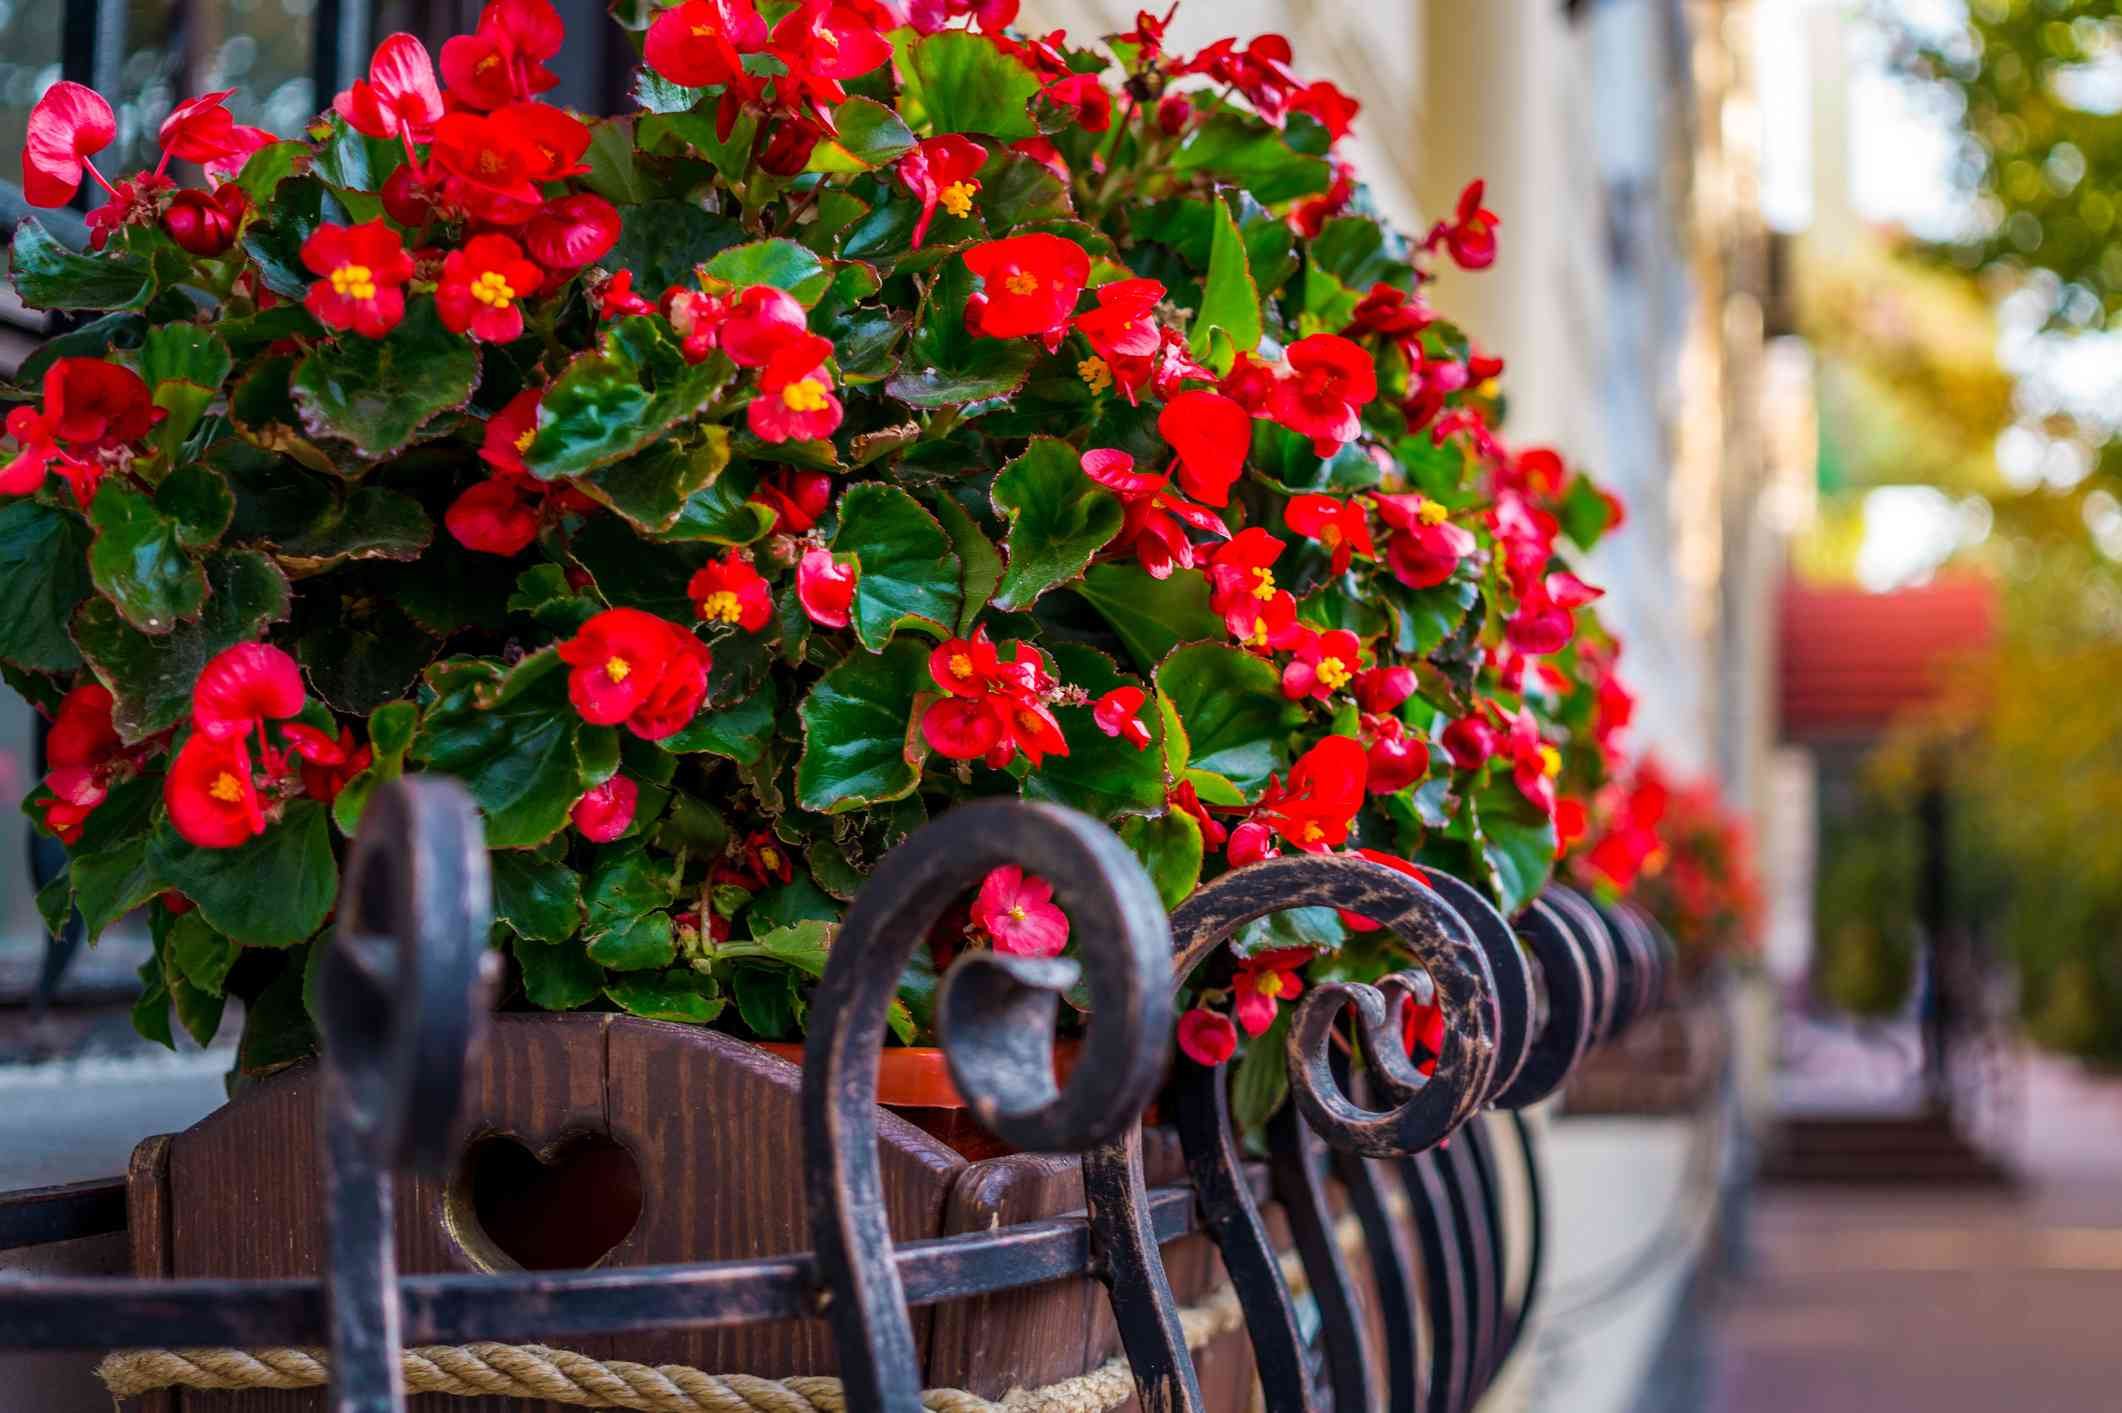 Red begonias blooming in a flower box on a balcony